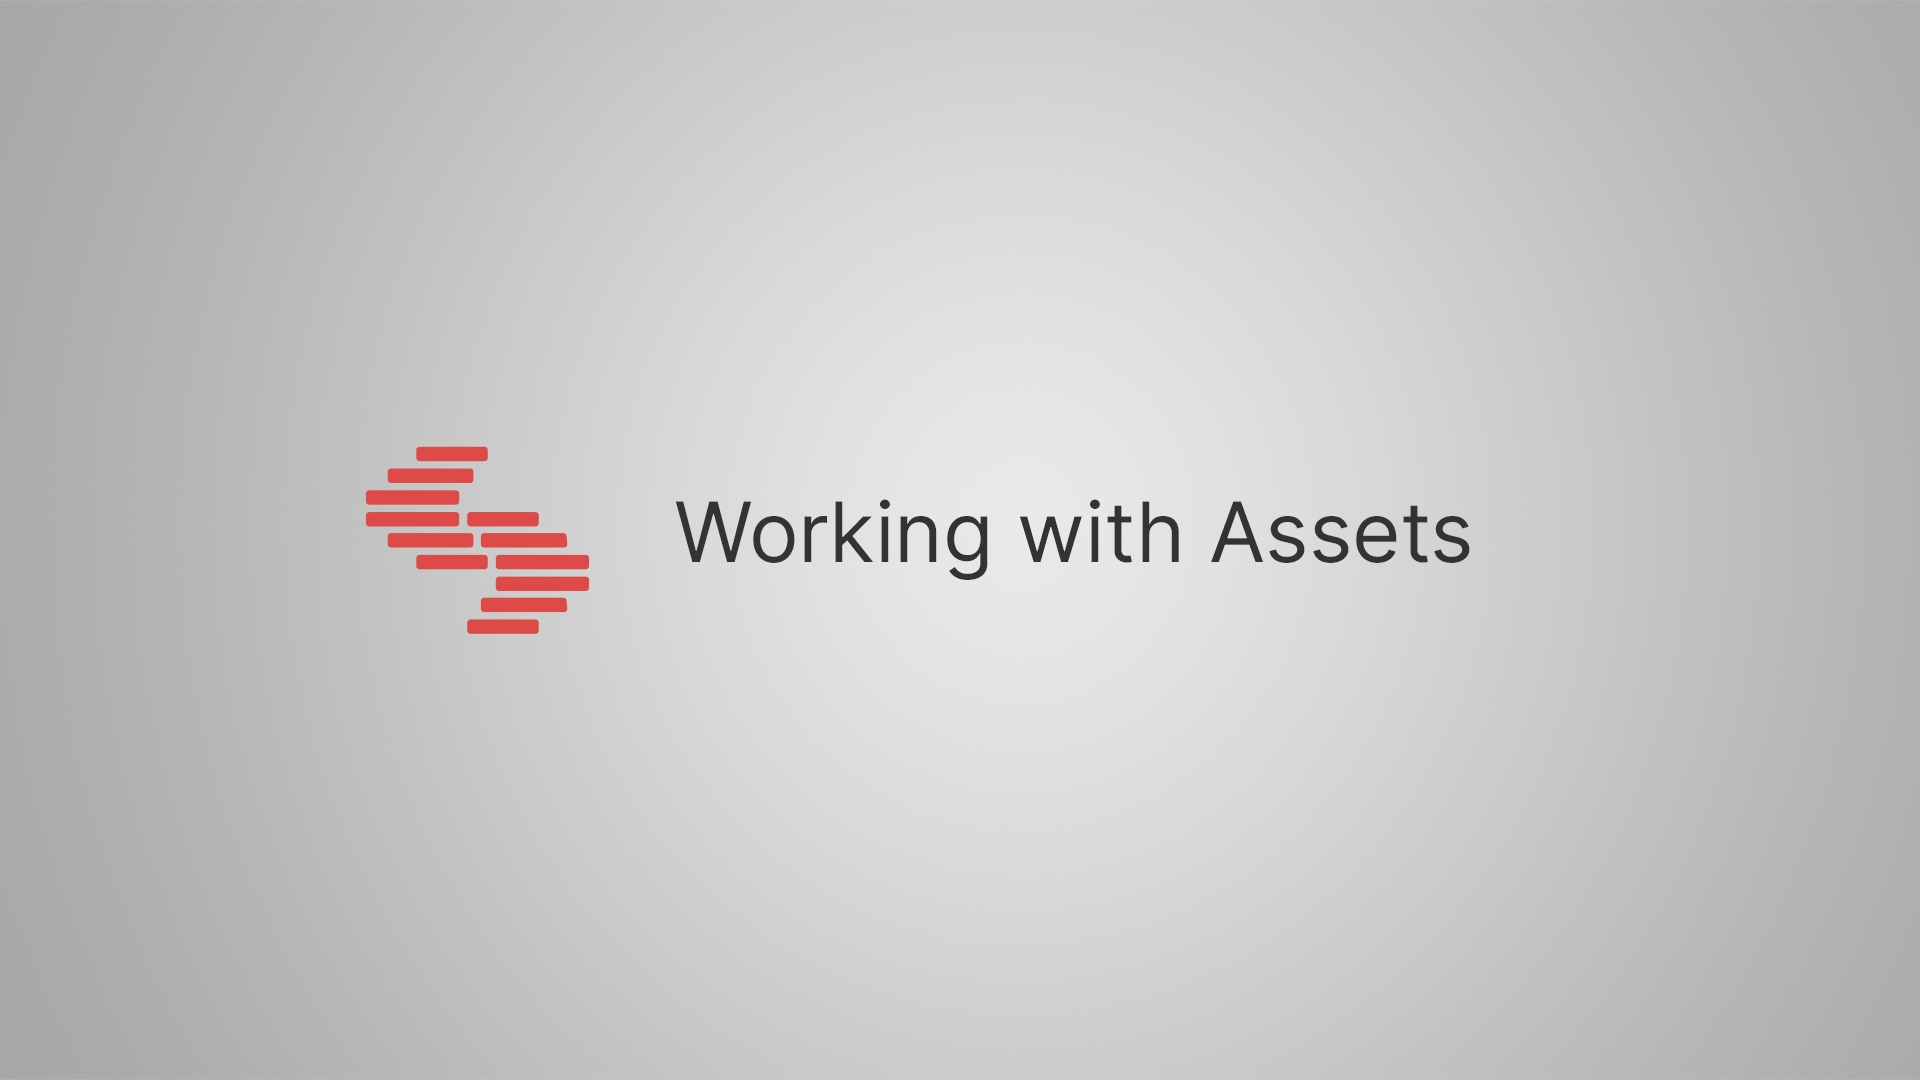 About Assets